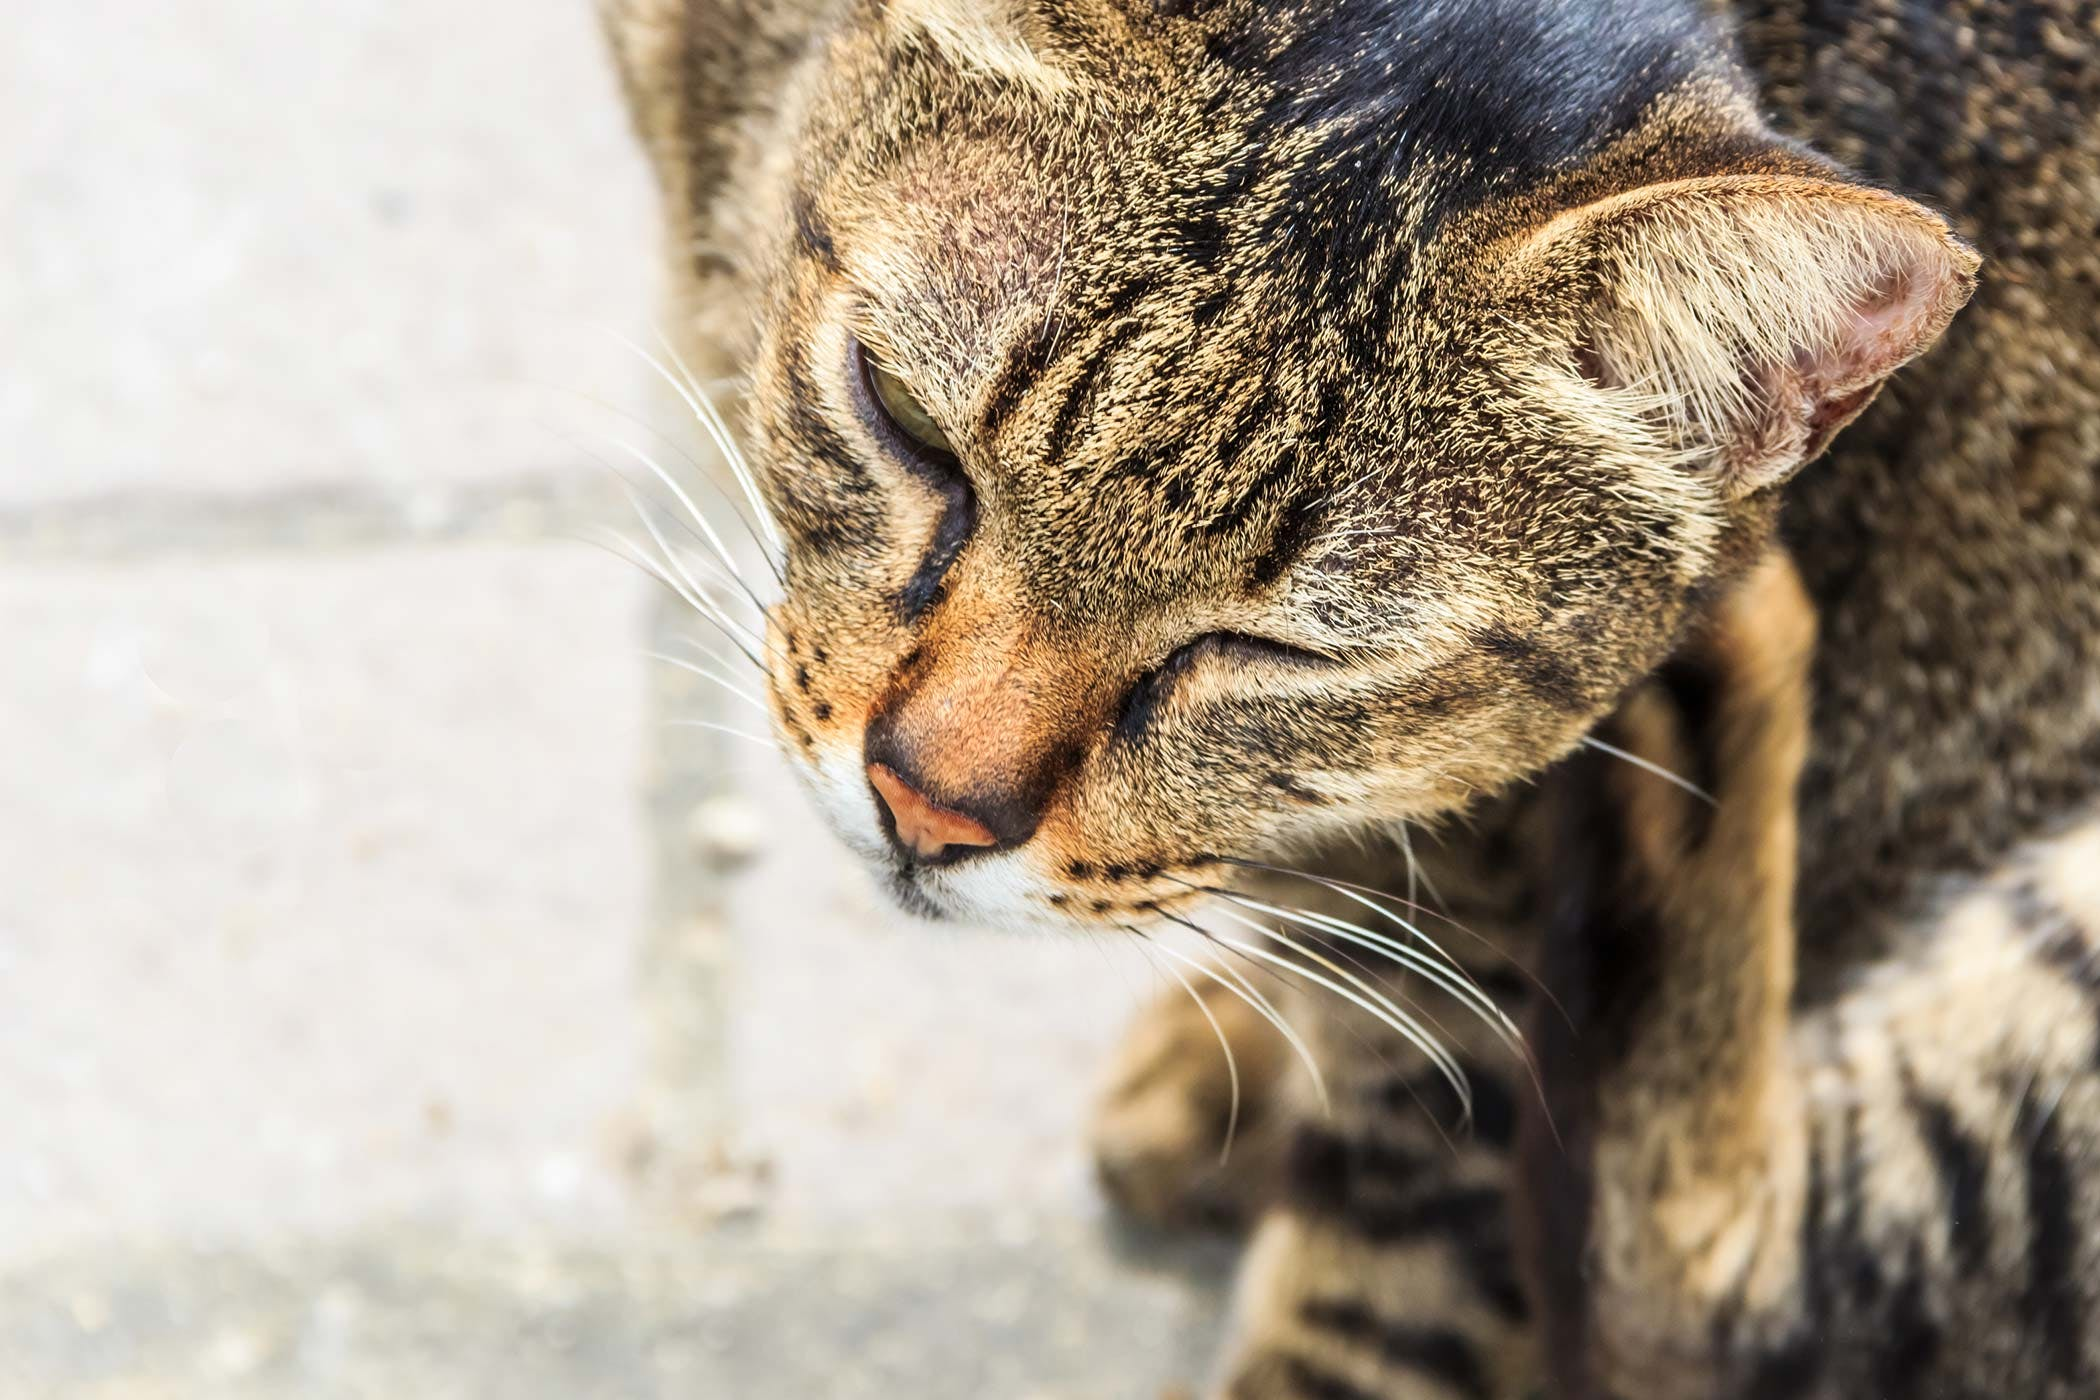 Bacterial Skin Infection in Cats - Symptoms, Causes